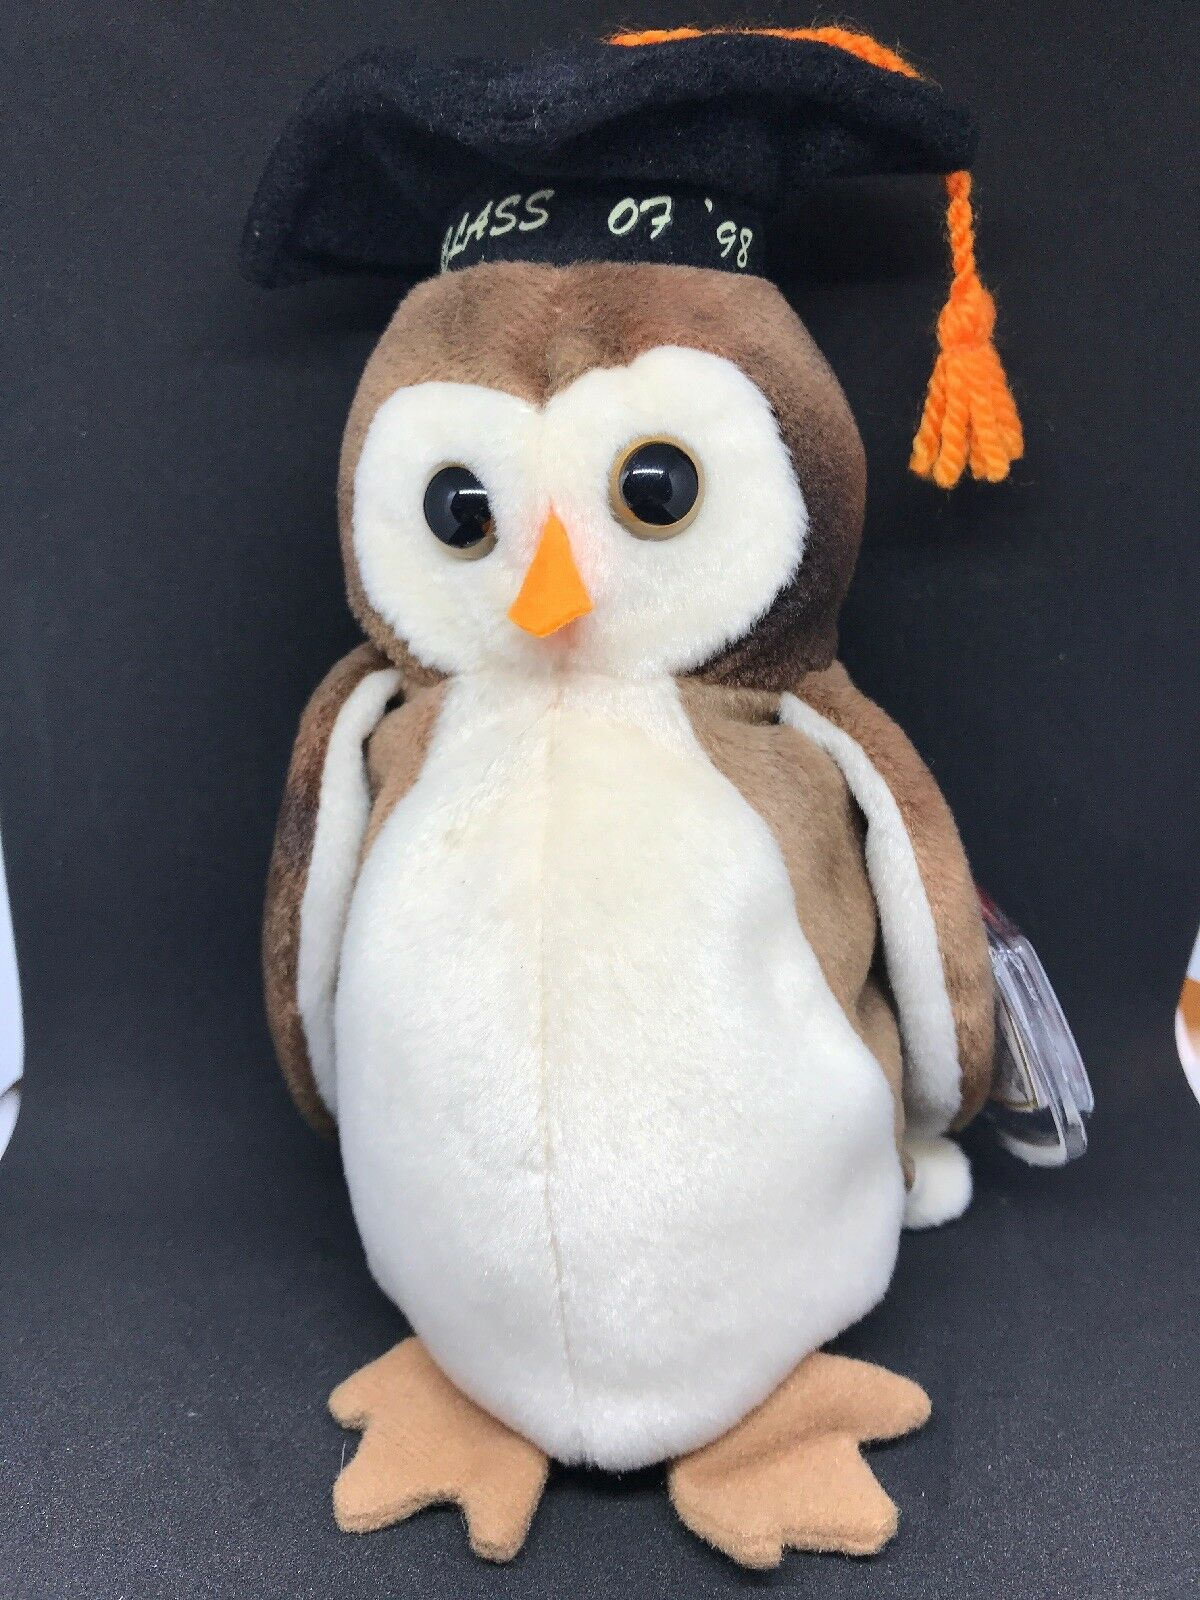 TY Beanie Baby  WISE Graduation Owl Class Class Class of 1998  NEW with Tags Retired d5ac1c